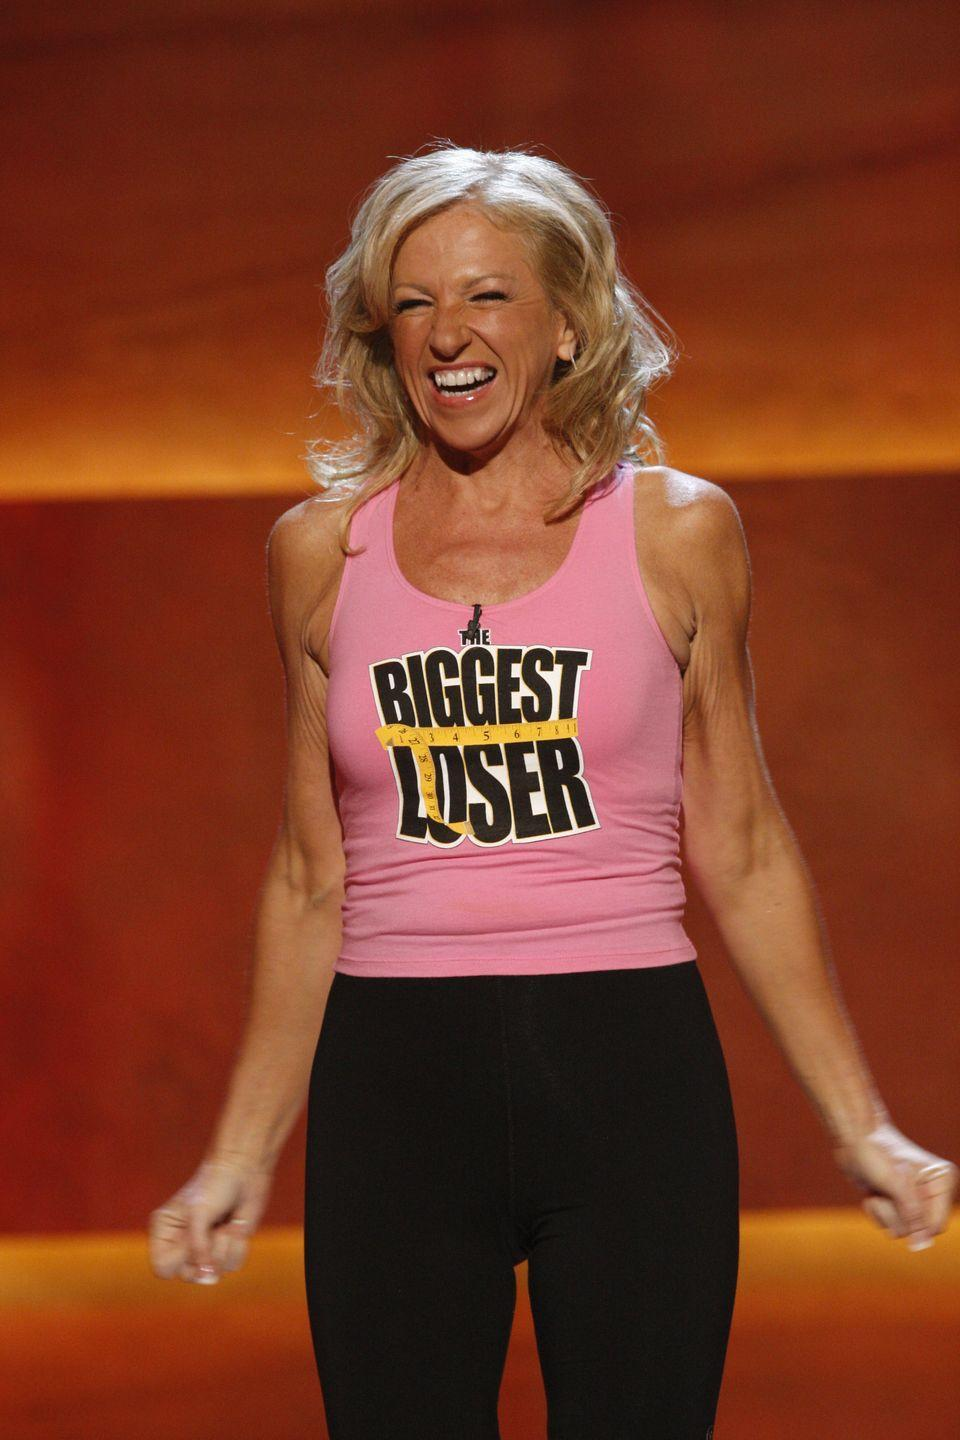 """<p>Helen nabbed <em>The Biggest Loser</em> title in season 7 after she went from 257 pounds to 117. """"It's been a tremendous change,"""" she told <em><a href=""""https://www.goodhousekeeping.com/health/diet-nutrition/a18673/helen-phillips-weight-loss-success/"""" rel=""""nofollow noopener"""" target=""""_blank"""" data-ylk=""""slk:Good Housekeeping"""" class=""""link rapid-noclick-resp"""">Good Housekeeping</a></em> after her win.</p>"""